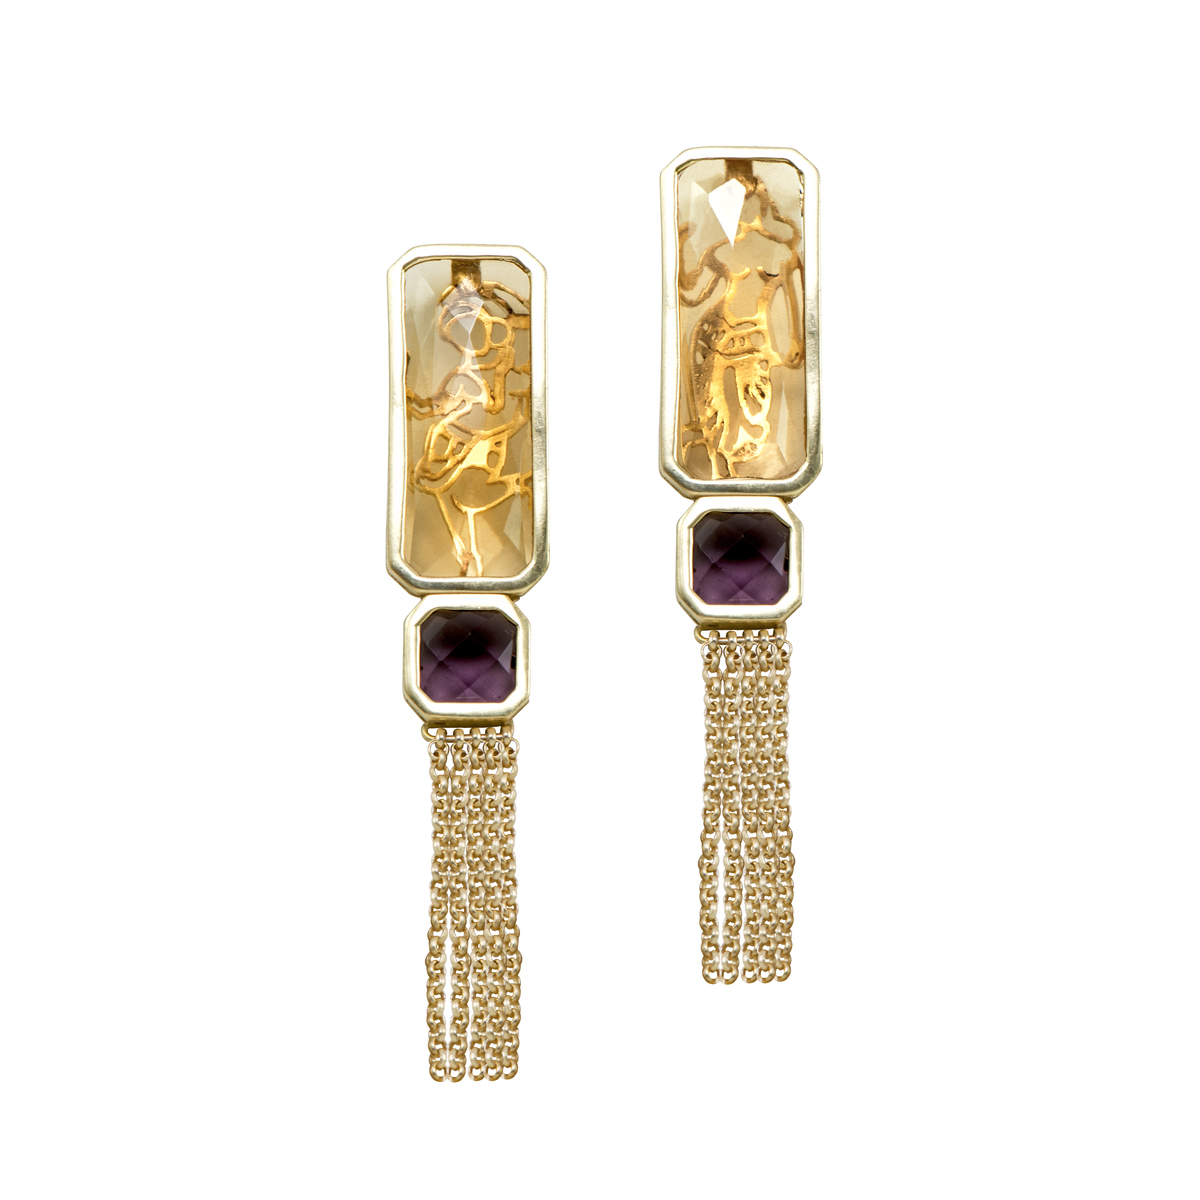 Citrine/Amethyst Mohini Earrings by Nine Vice, Art Jewellery Earring